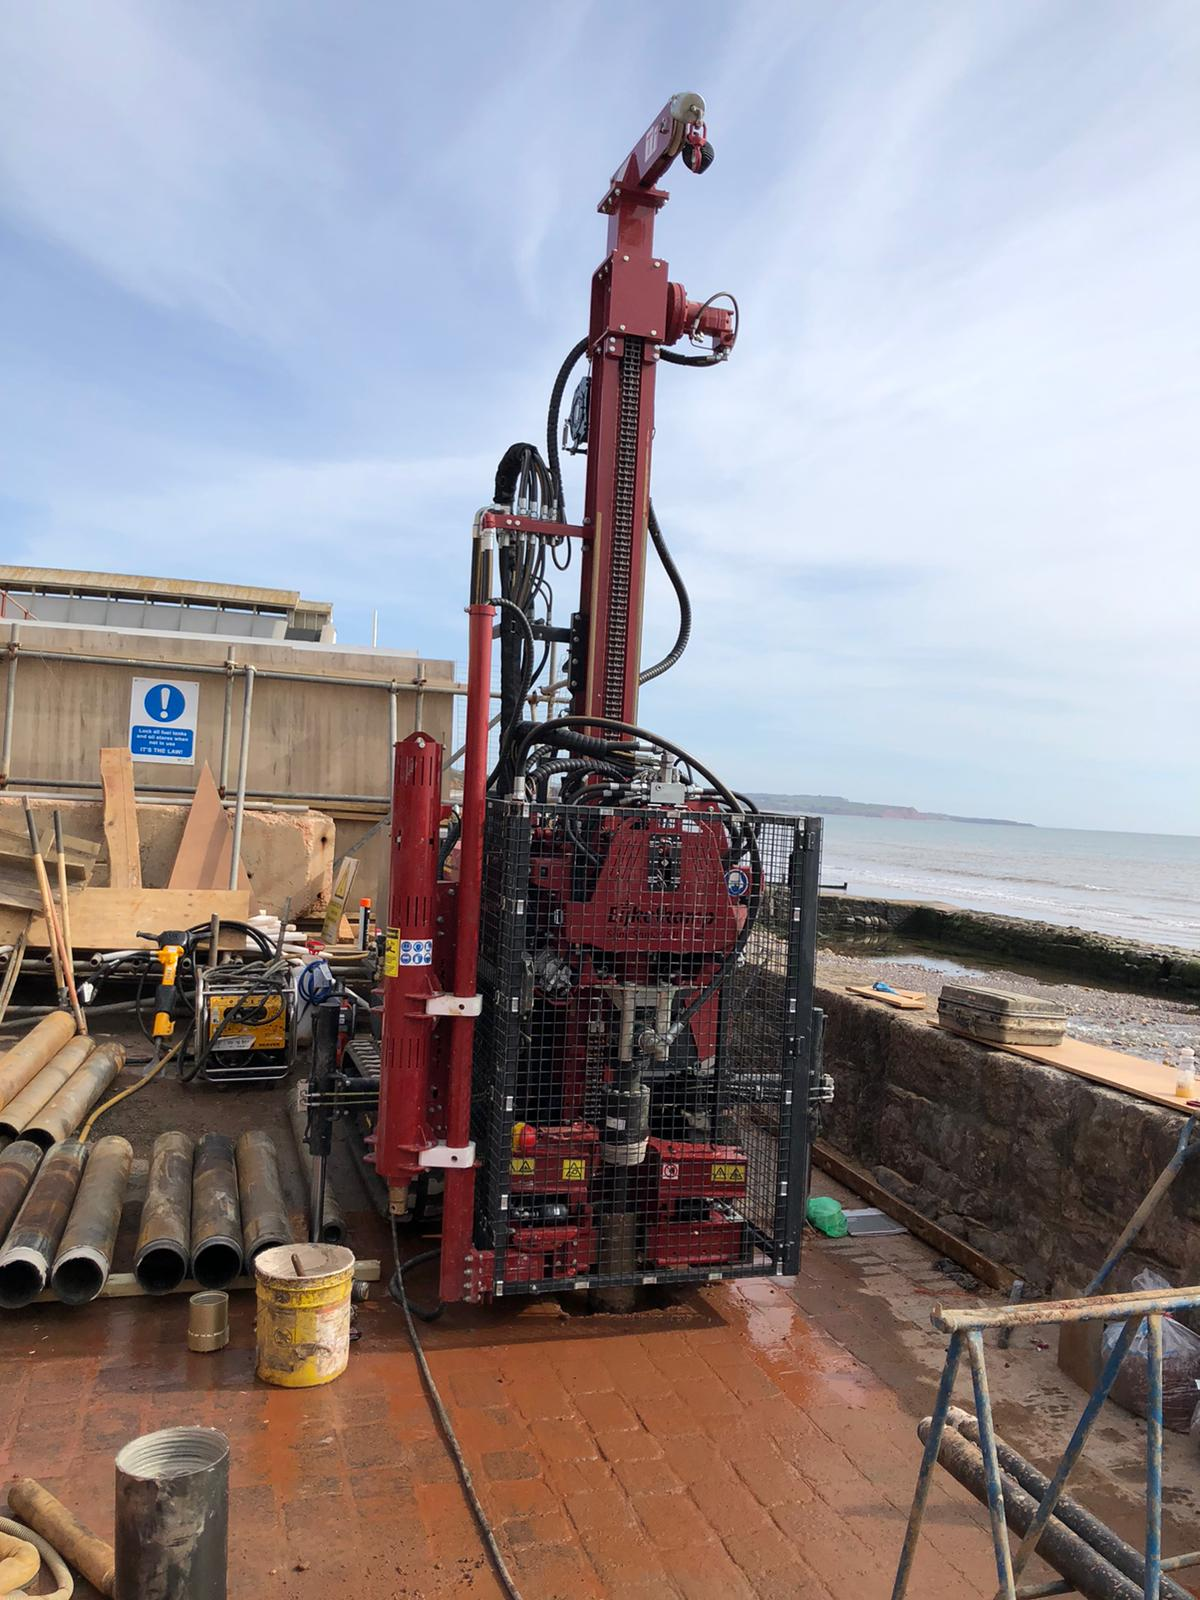 A sonic drilling rig in use